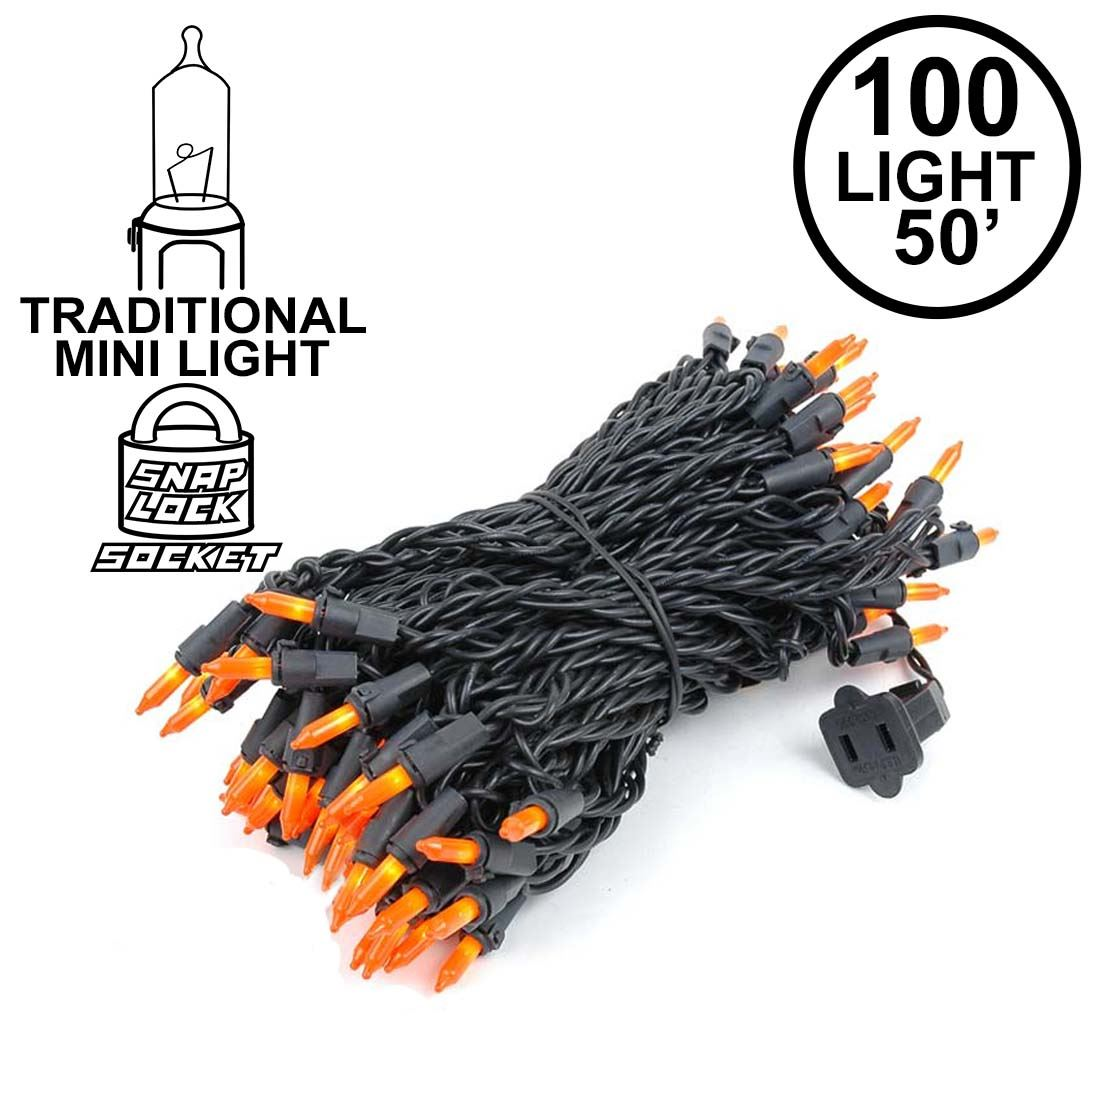 Picture of Frosted Orange Mini Lights 100 Light 50 Feet Long on Black Wire